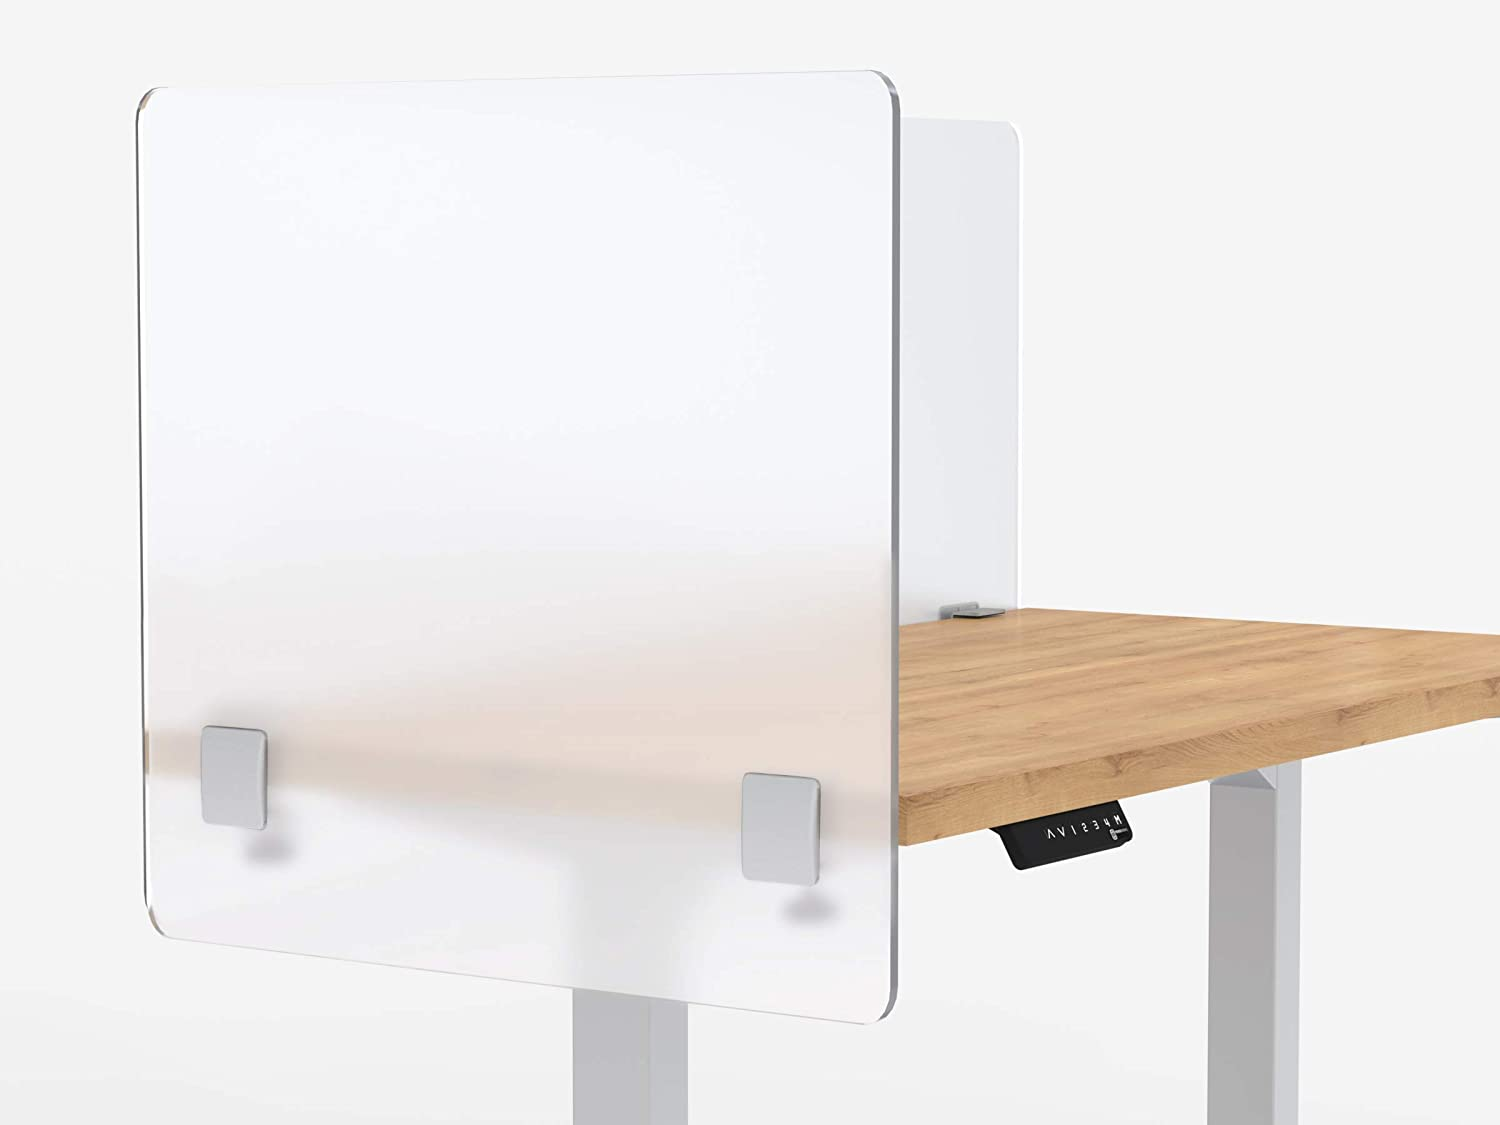 """VaRoom Privacy Partition and Sneeze Guard, Frosted Acrylic Clamp-on Desk Divider – 30"""" W x 24""""H Privacy Desk Mounted Cubicle Panel"""